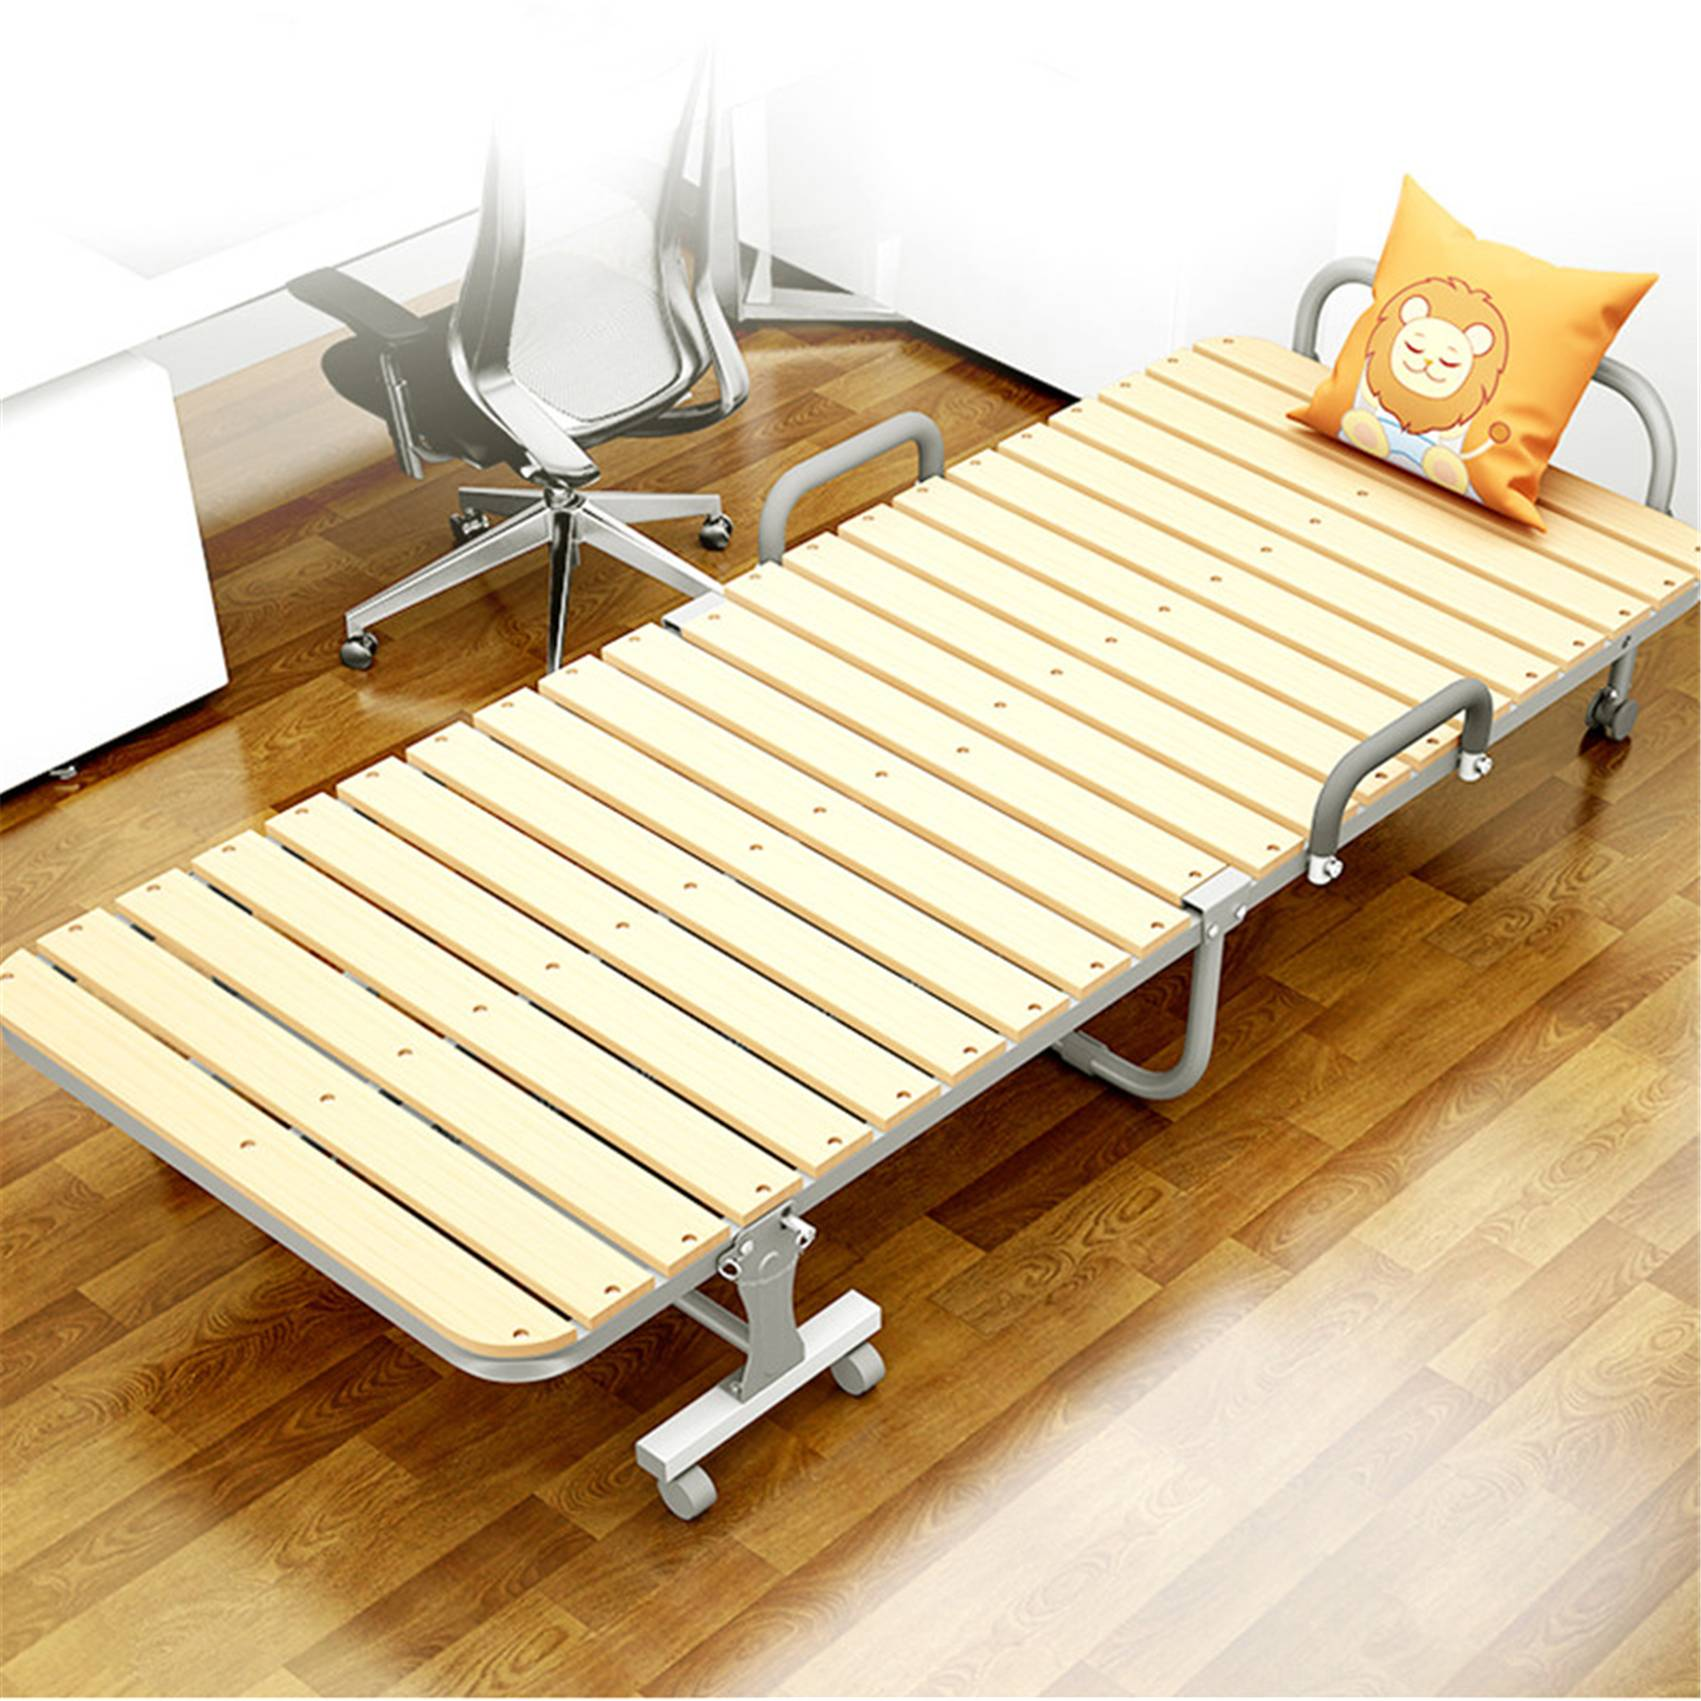 Domestic Adult Furniture Wooden Metal Bed 0212-2 Featured Image